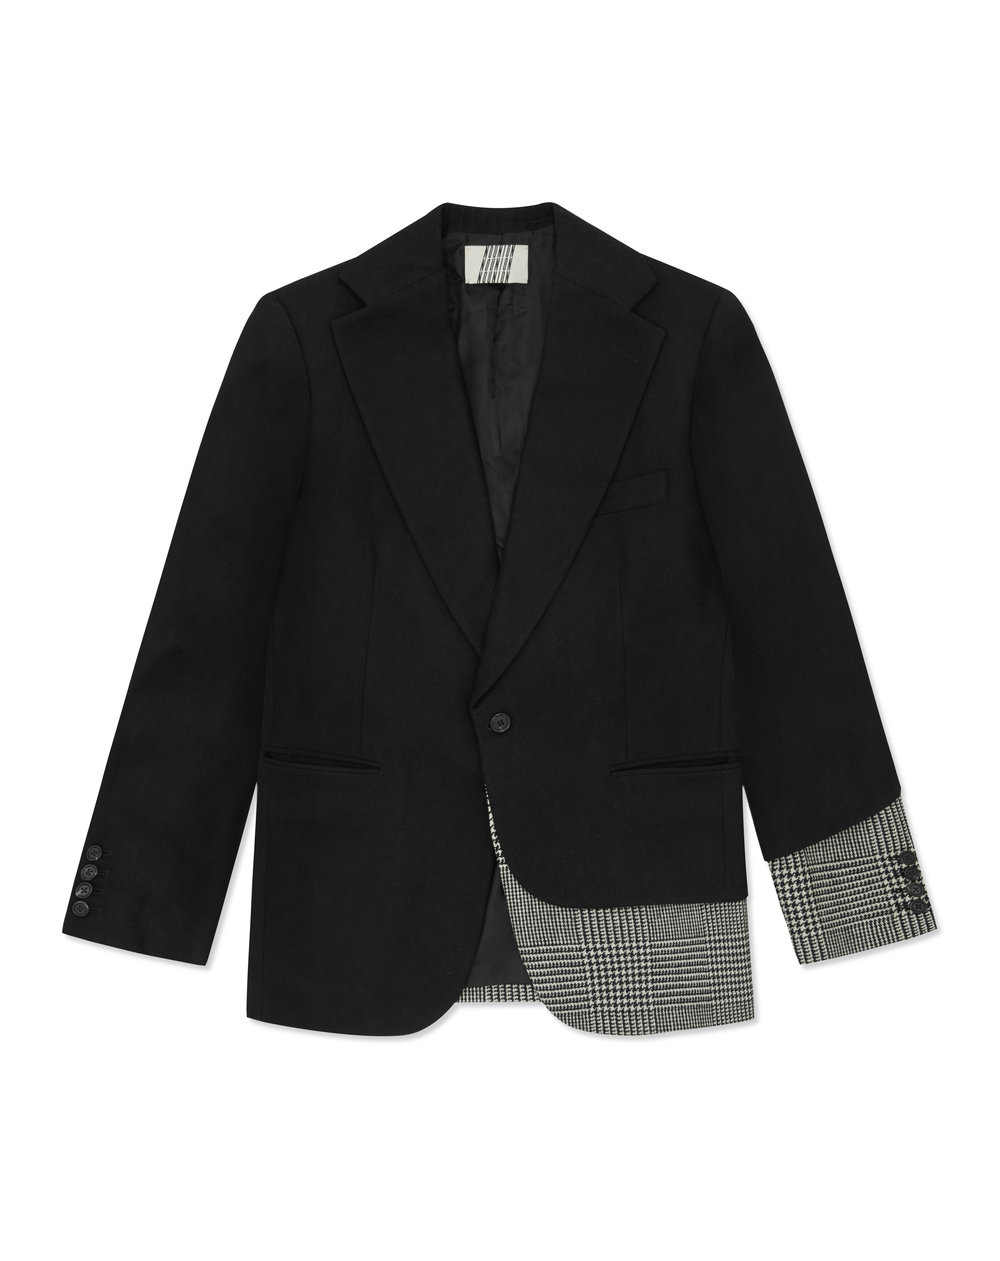 C2-O-07_Fully-Canvas Tailored Paneled Suit Jacket_01.jpg